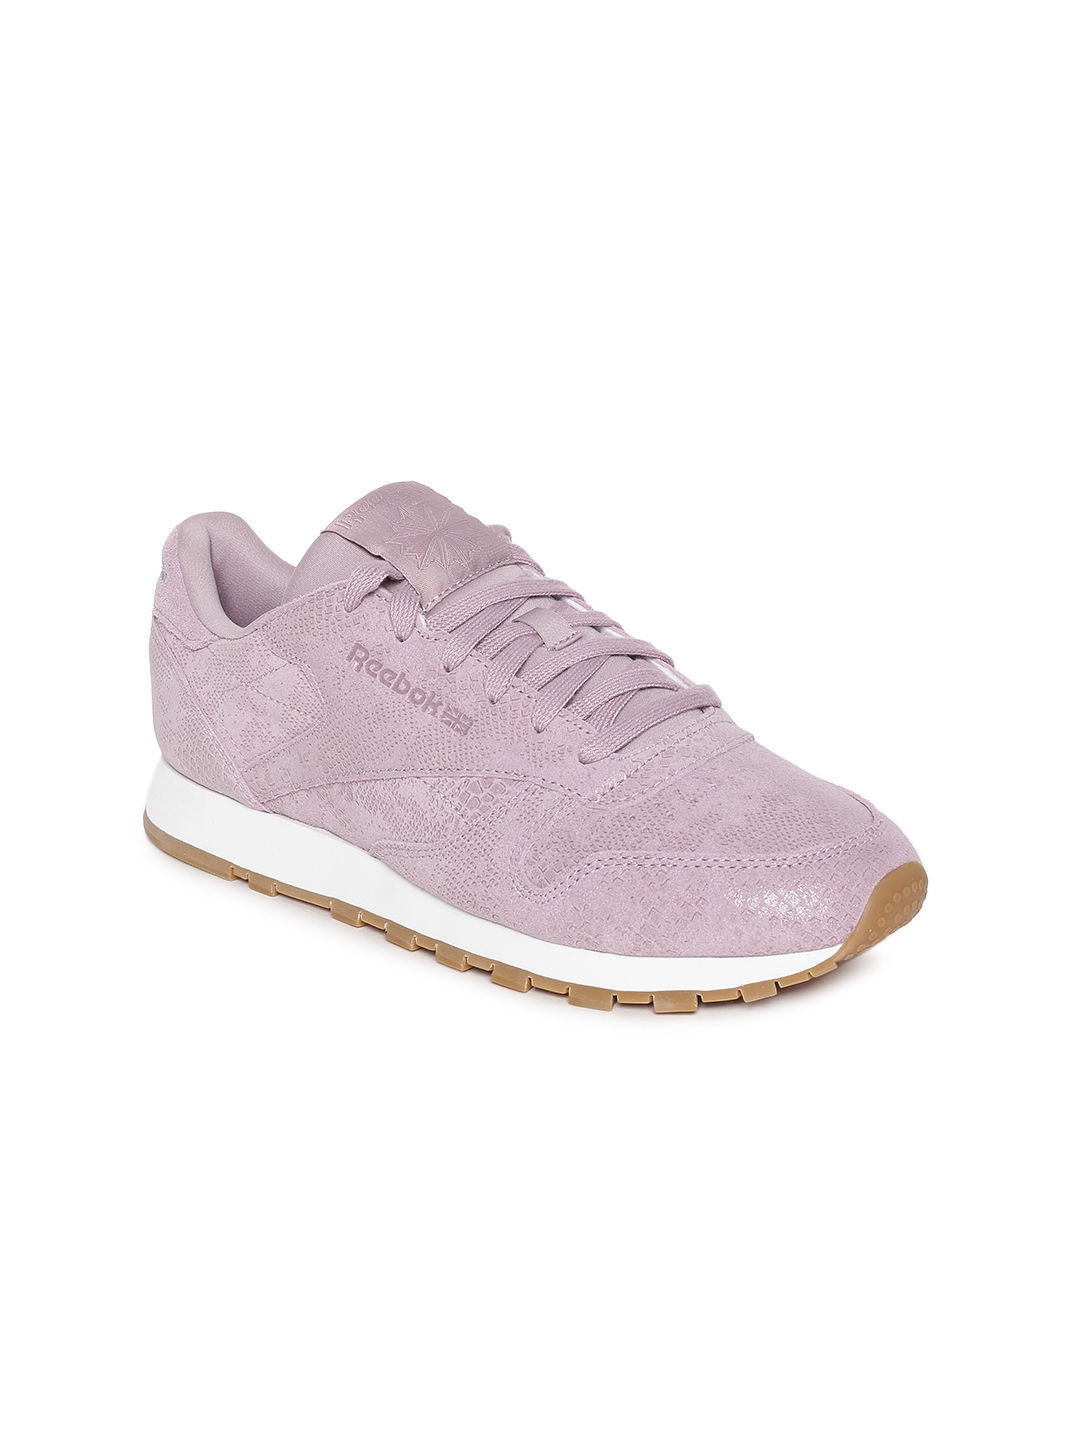 0f423a7256d55 Buy Reebok Classic Women Mauve CL Leather Sneakers - Casual Shoes ...